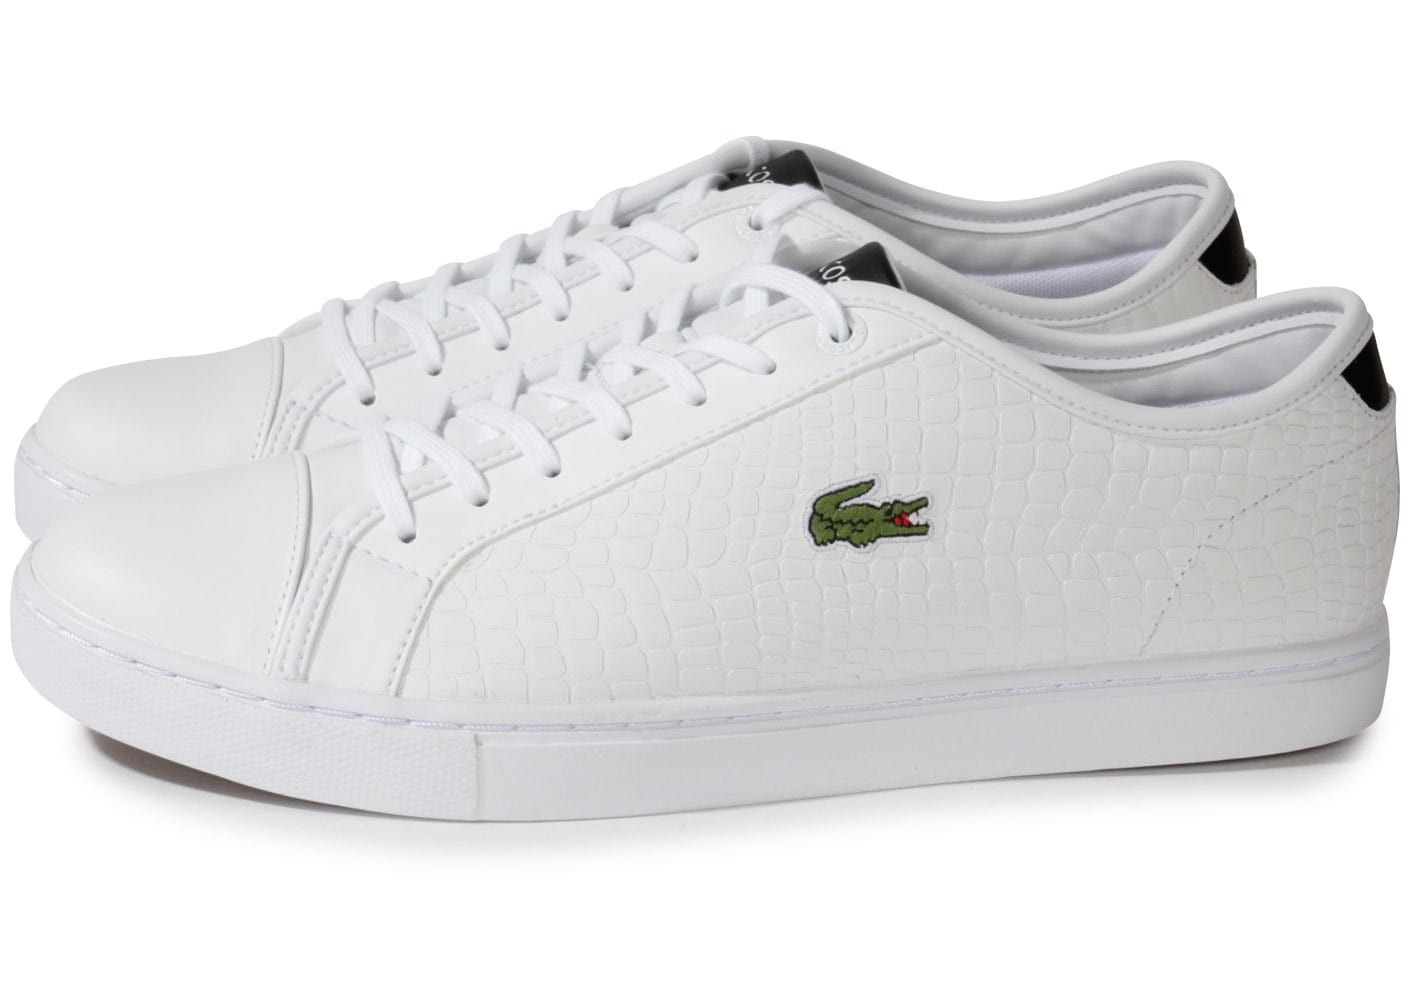 lacoste showcourt croc cuir blanc chaussures homme chausport. Black Bedroom Furniture Sets. Home Design Ideas